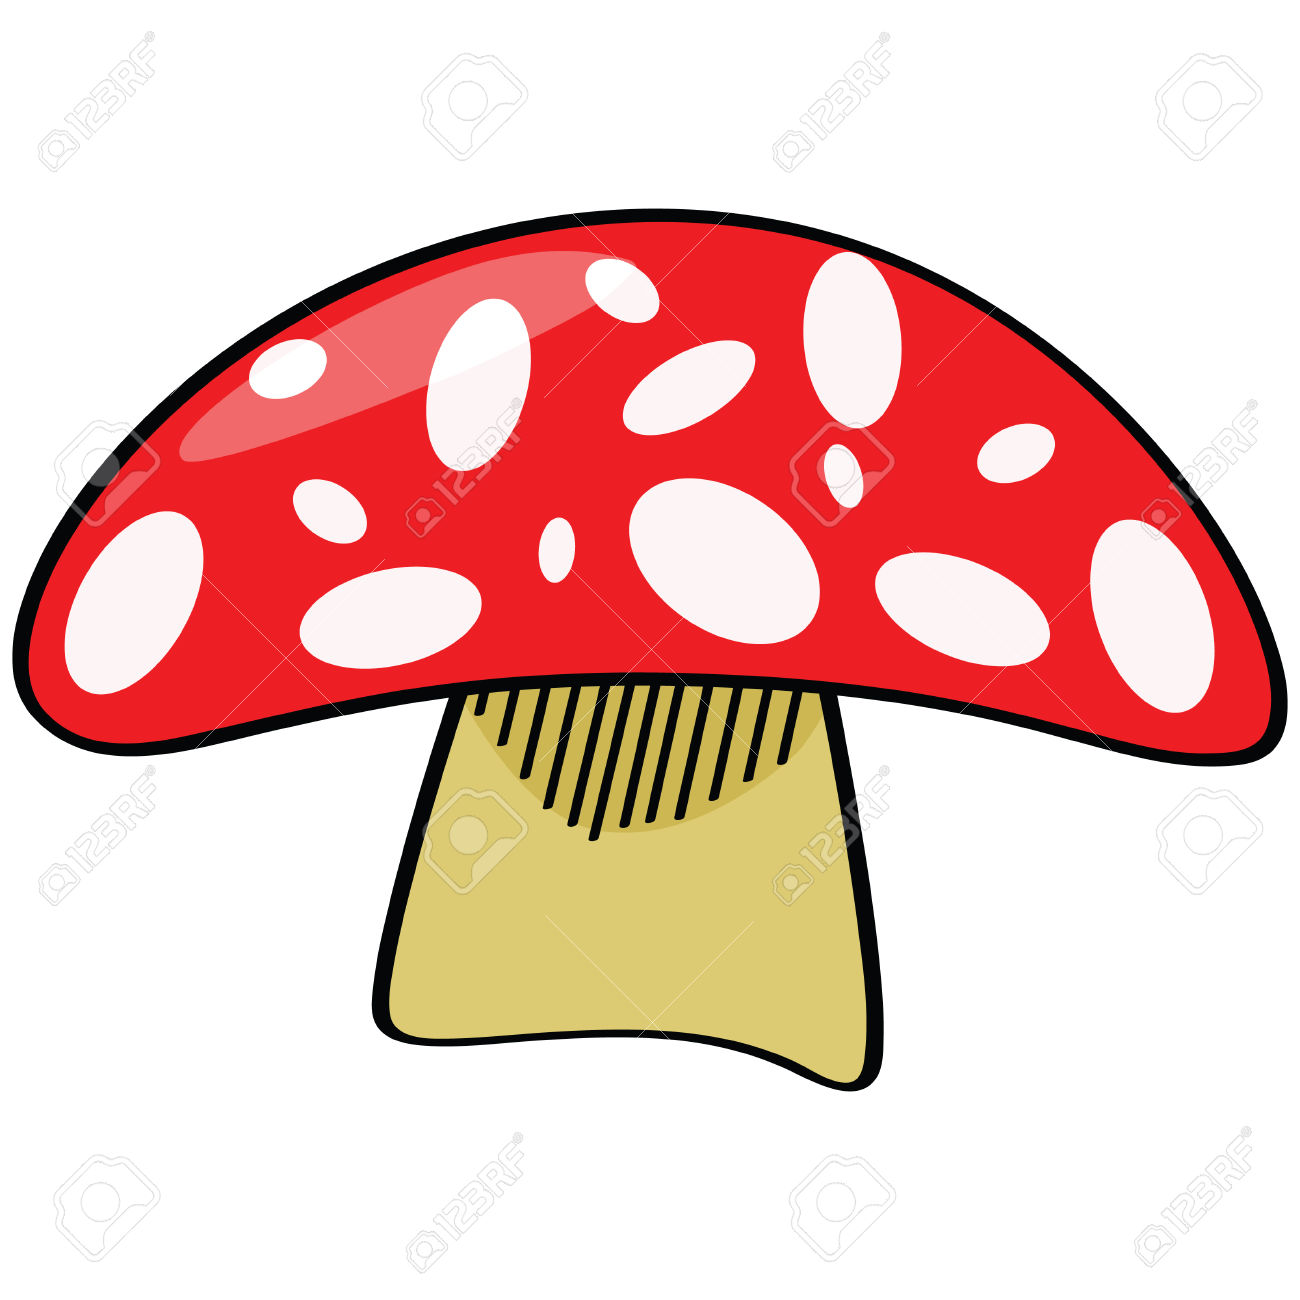 Cartoon Illustration Of A Red Mushroom With White Oval Shapes.